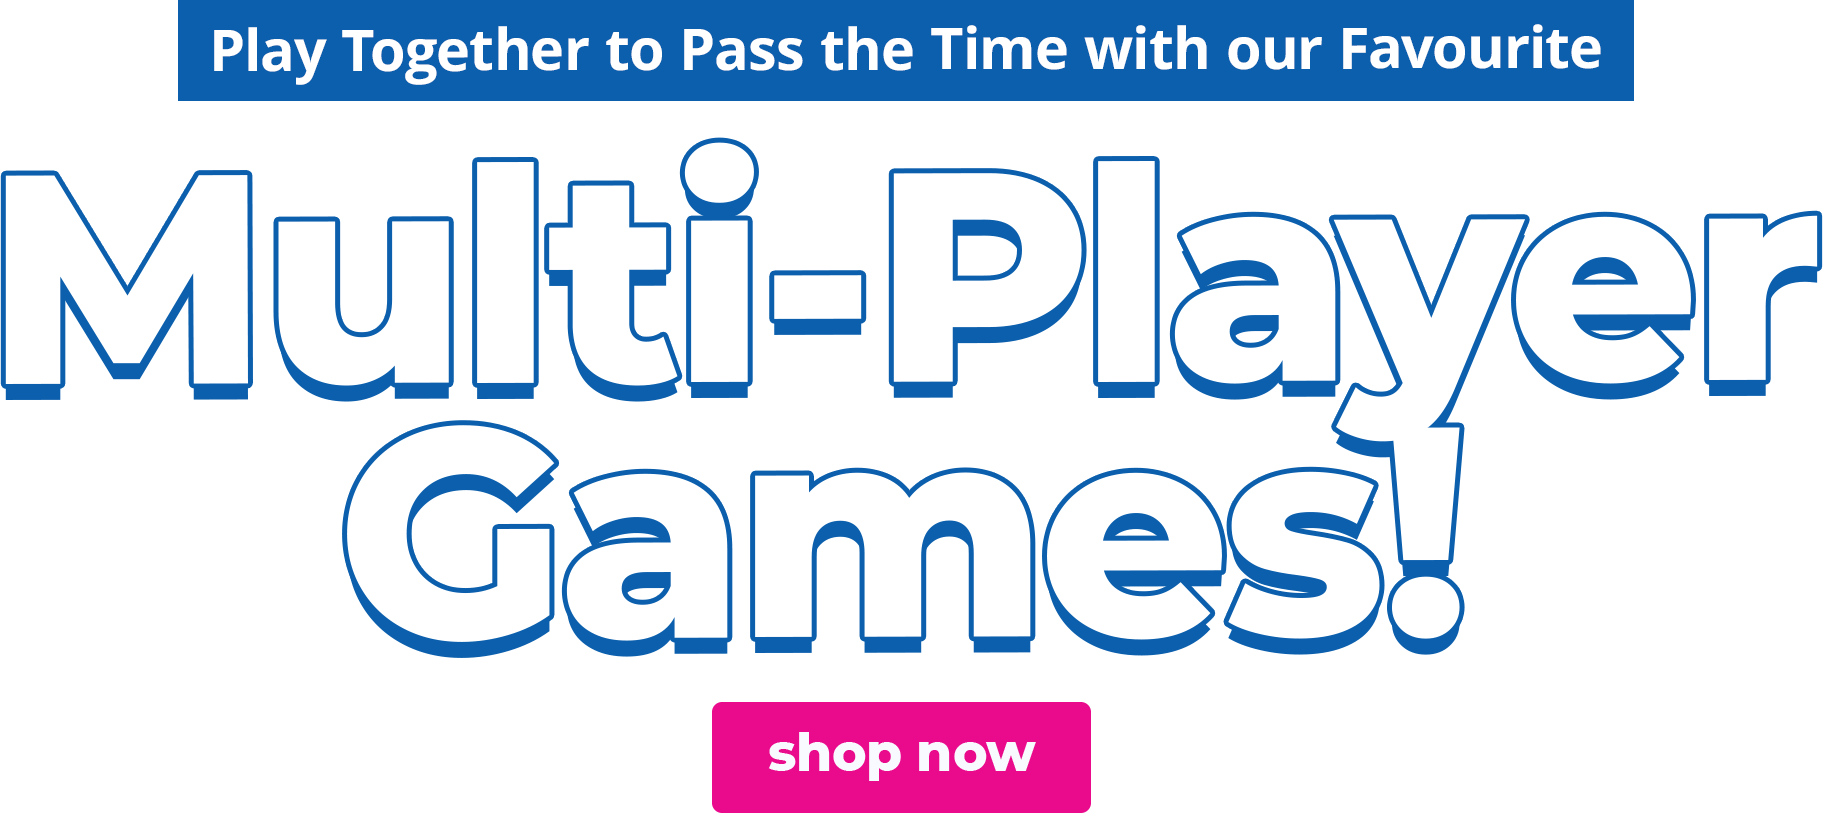 Pass the Time With These 2 Player Board Games From JR Toy Company Canada